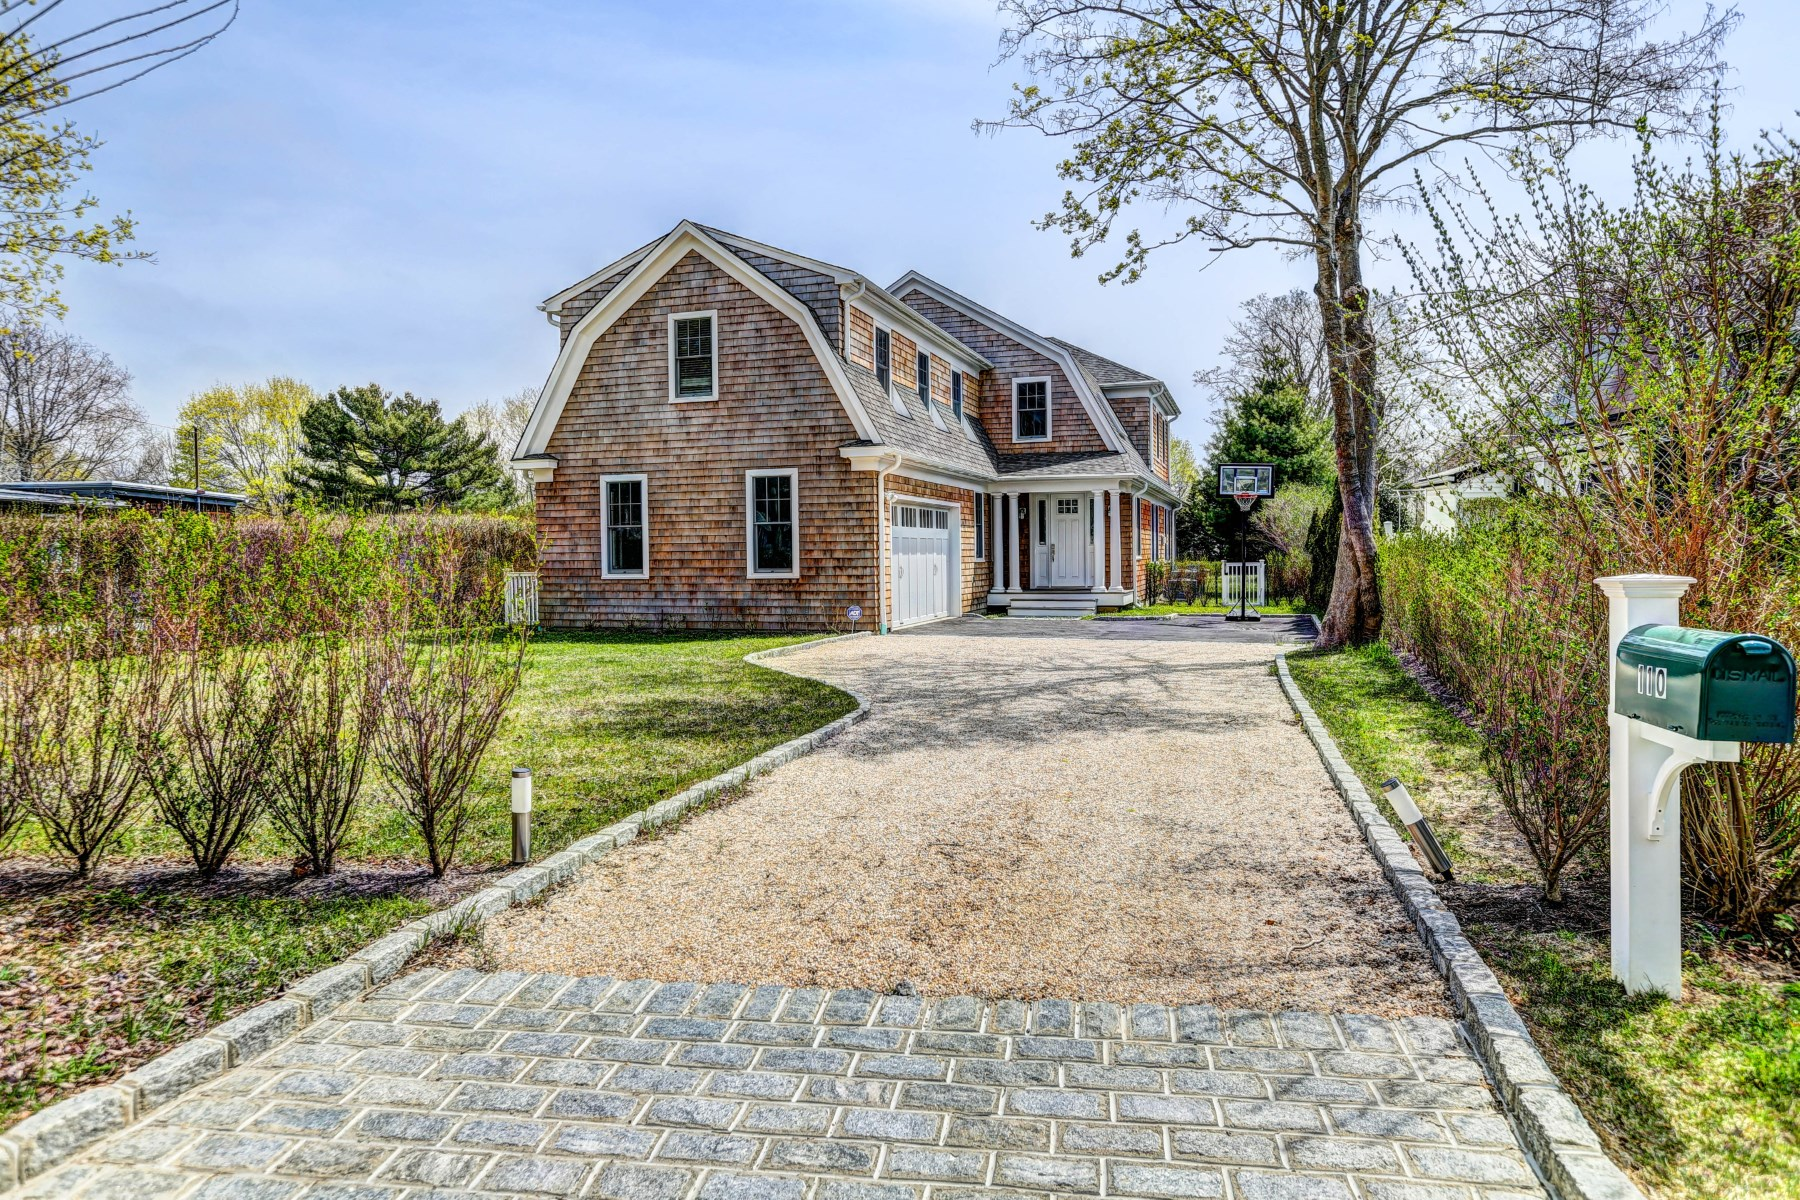 Single Family Home for Rent at Village Perfection 110 Pelletreau Street Southampton, New York 11968 United States